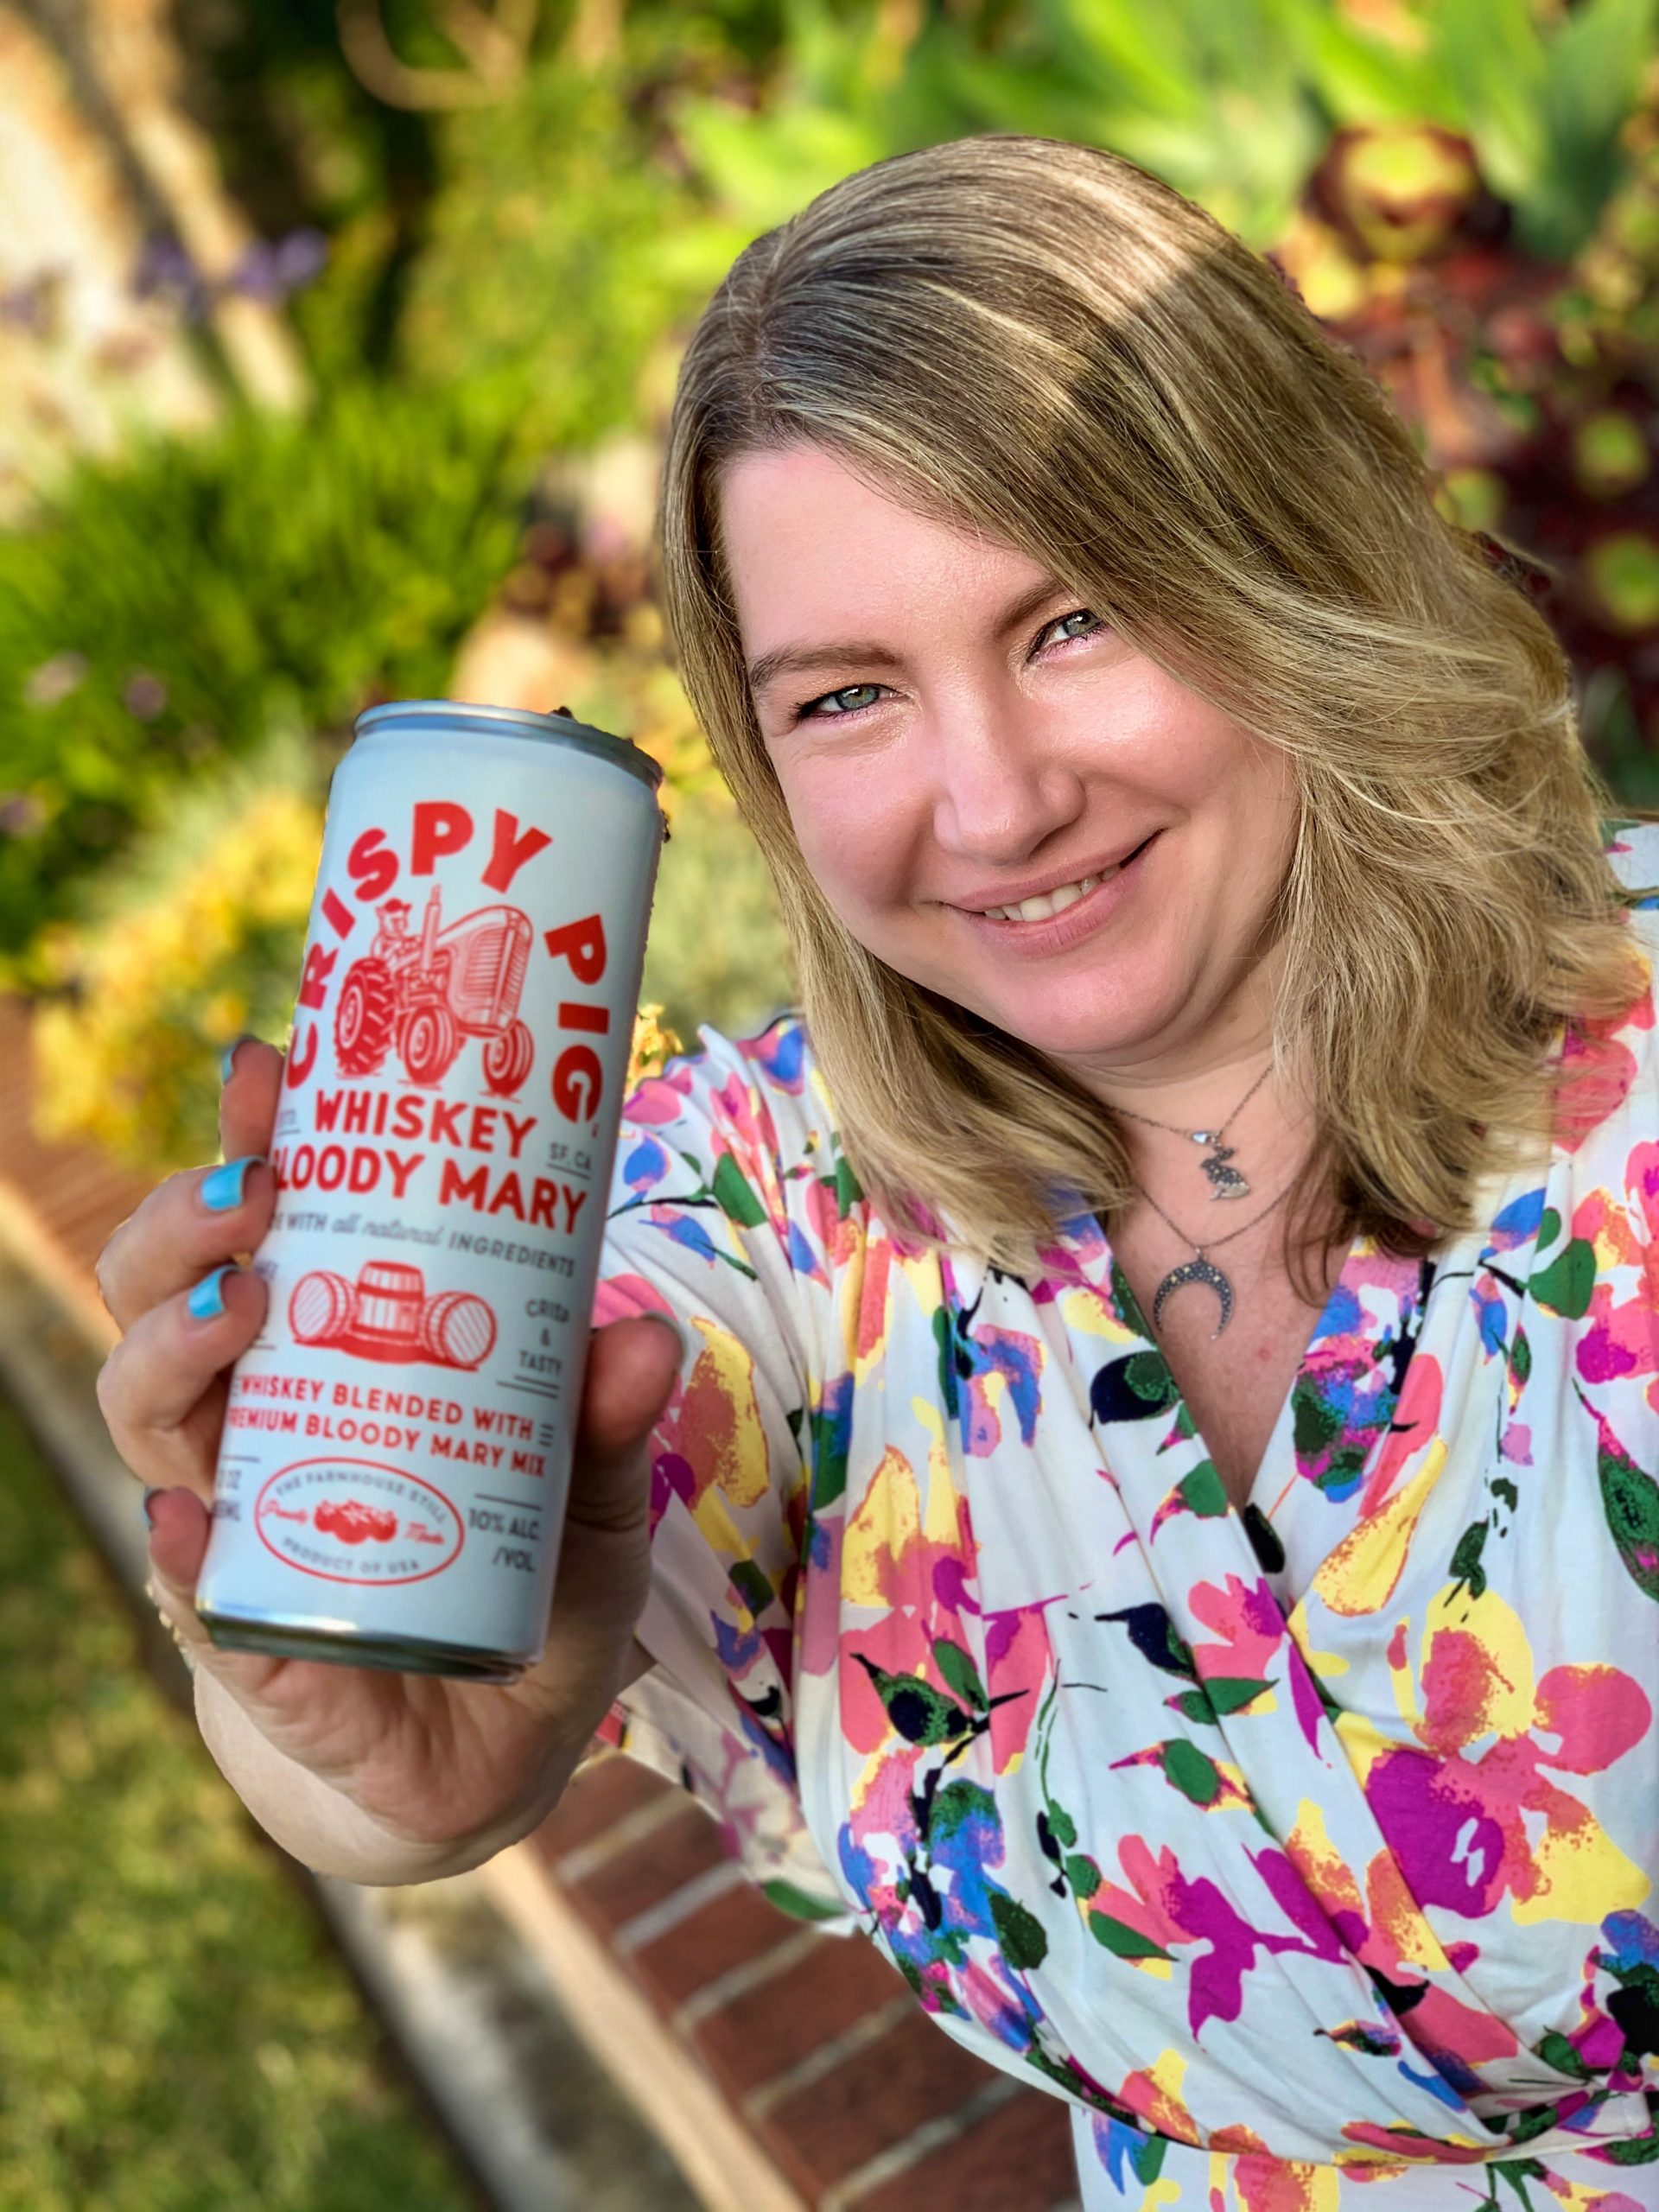 Natasha, smiling and holding a can of Crispy Pig